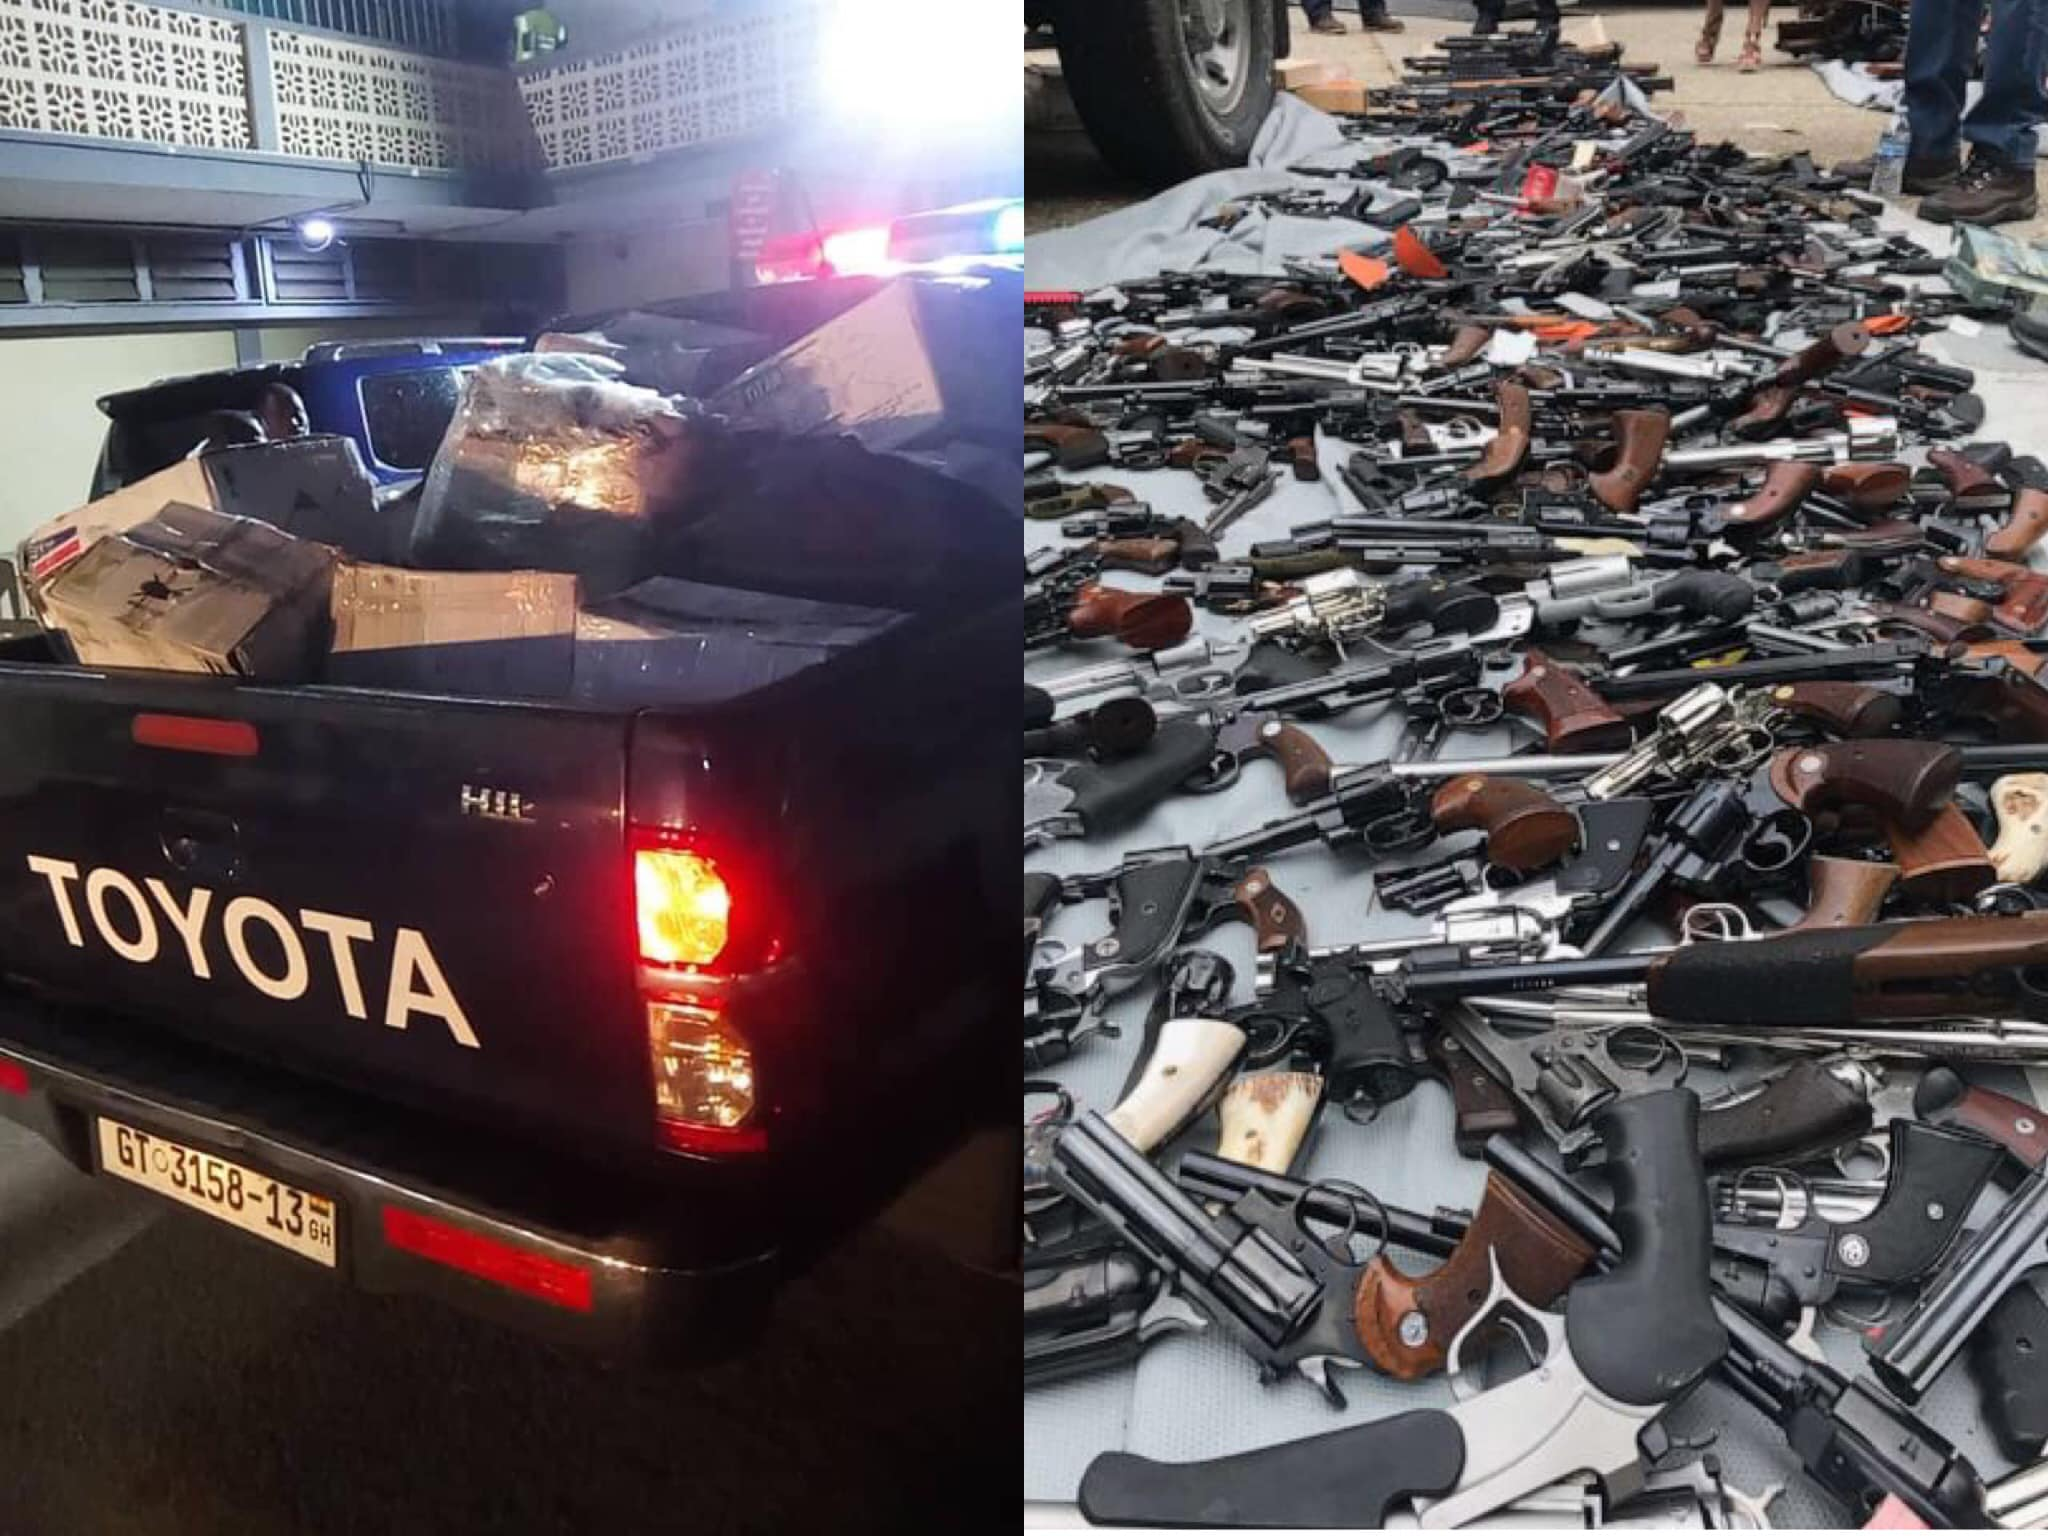 Weapons seized at Tema port miraculously turns out to be gas pistols – Police reveals